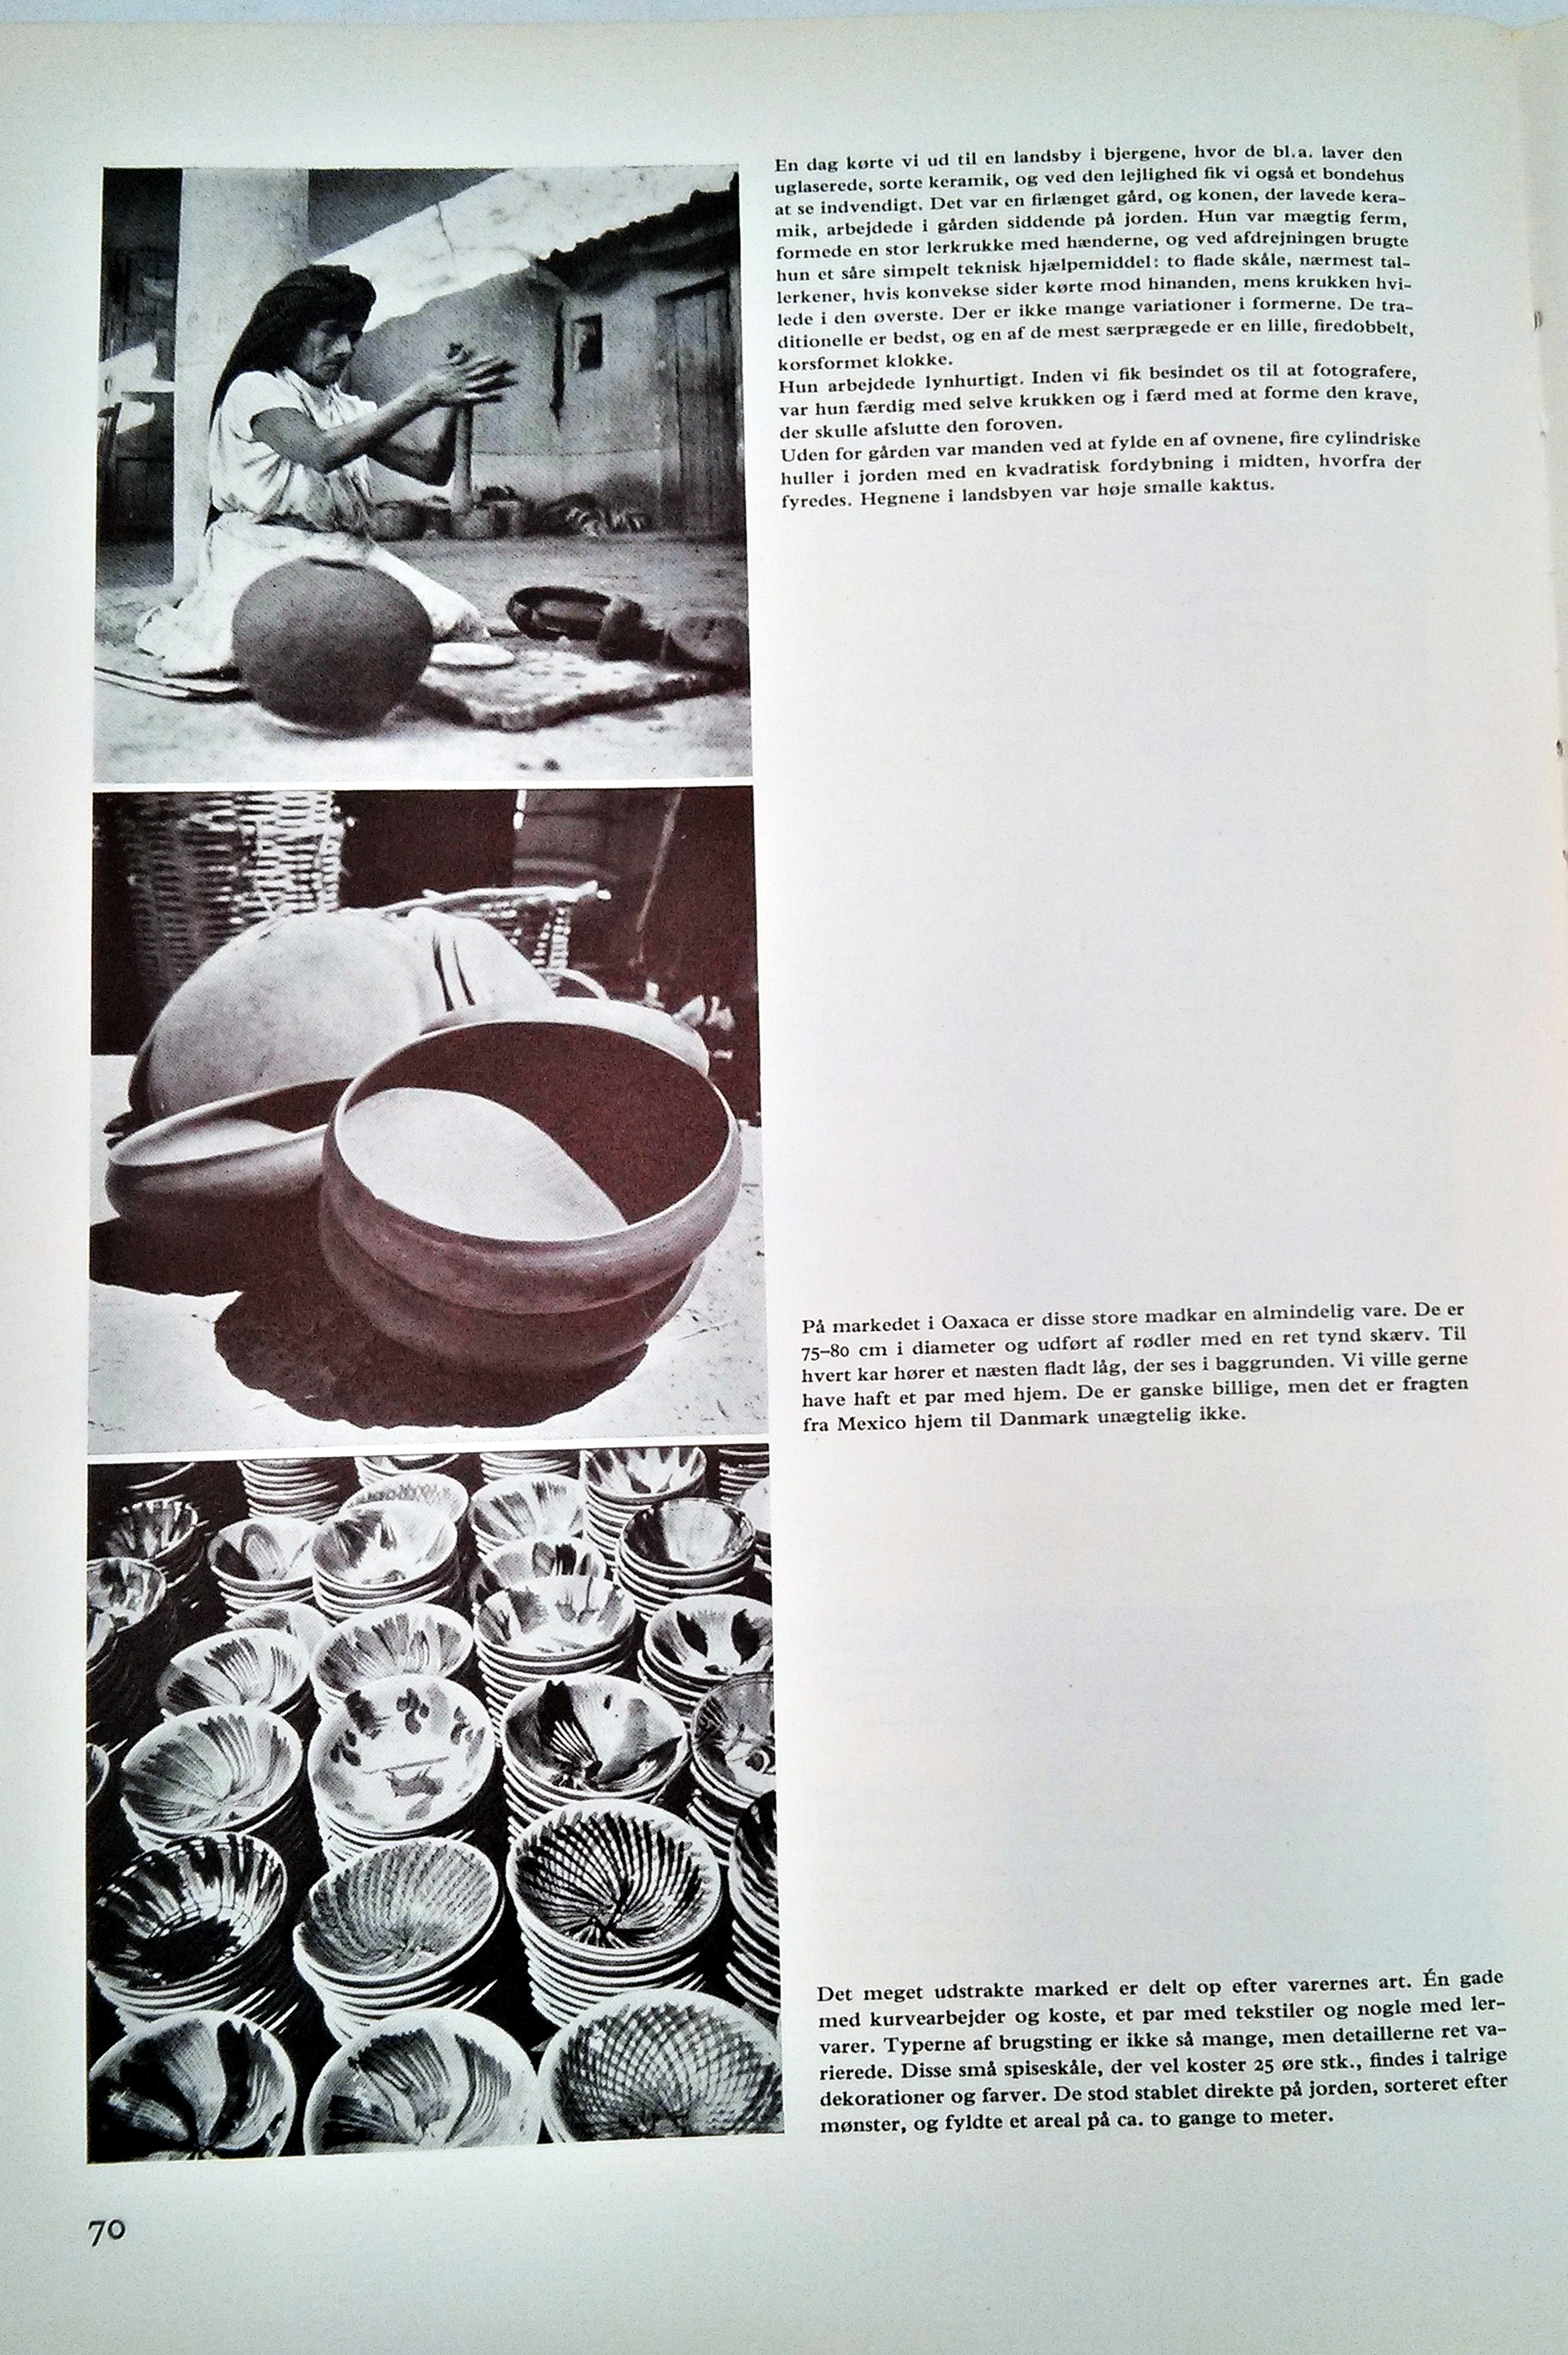 This page and accompanying text details some of Nanna Ditzel's experiences during her Lunning Prize trip to mexico where she drew much experience and inspiration towards her art. The first photo is of an old ceramicist they met in a small villiage. The couple were impressed with the speed and skill which these artisans created their wares, and with the most basic of tools. Nanna had a deep appreciation for the traditional patterns and designs. The second picture shows some large (80cm) bowls which Nanna Ditzel was fascinated with. The sides of the bowls are wafer thin and built up by shaping flat discs. It's easy to see where the shape and design was echoed into some of the modern silver pieces. Although they were inexpensive the cost of shipping them back to Denmark was prohibitive to the Ditzels. In the final picture they display a variety of patterned bowls which they had seen at one of the stalls in the expansive town market.